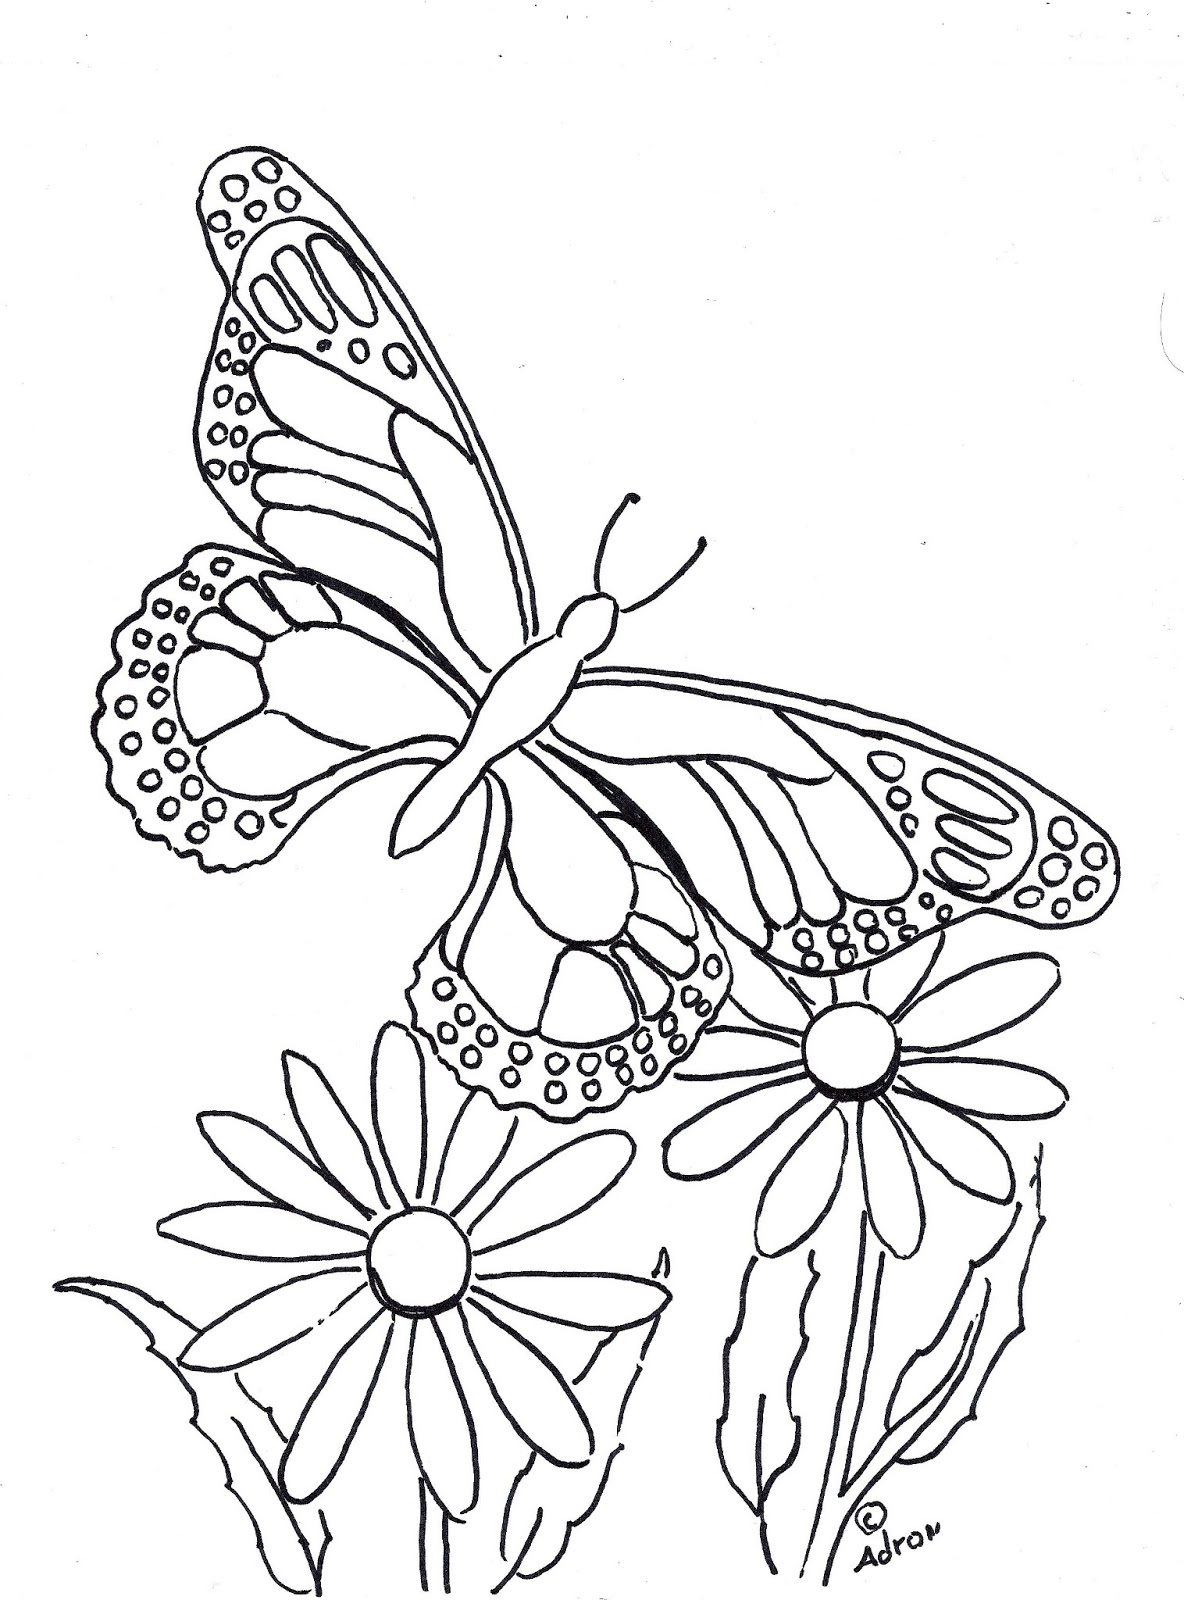 Coloring Pages for Kids by Mr. Adron: Butterfly Coloring ...